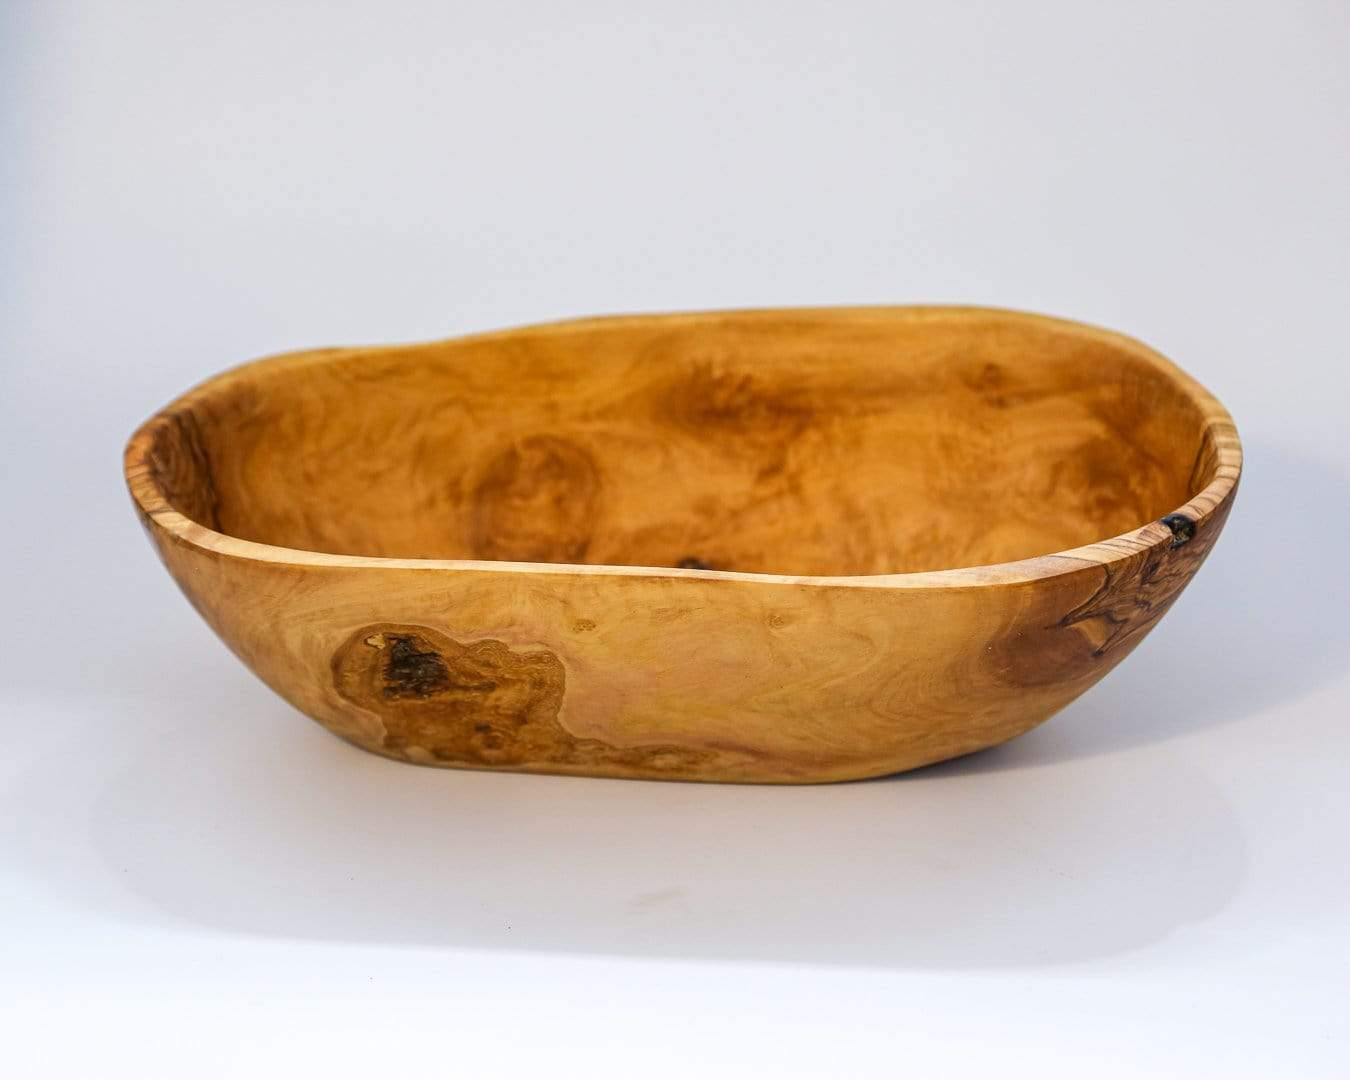 Shams El Balad Tableware Olive Wood Bowl